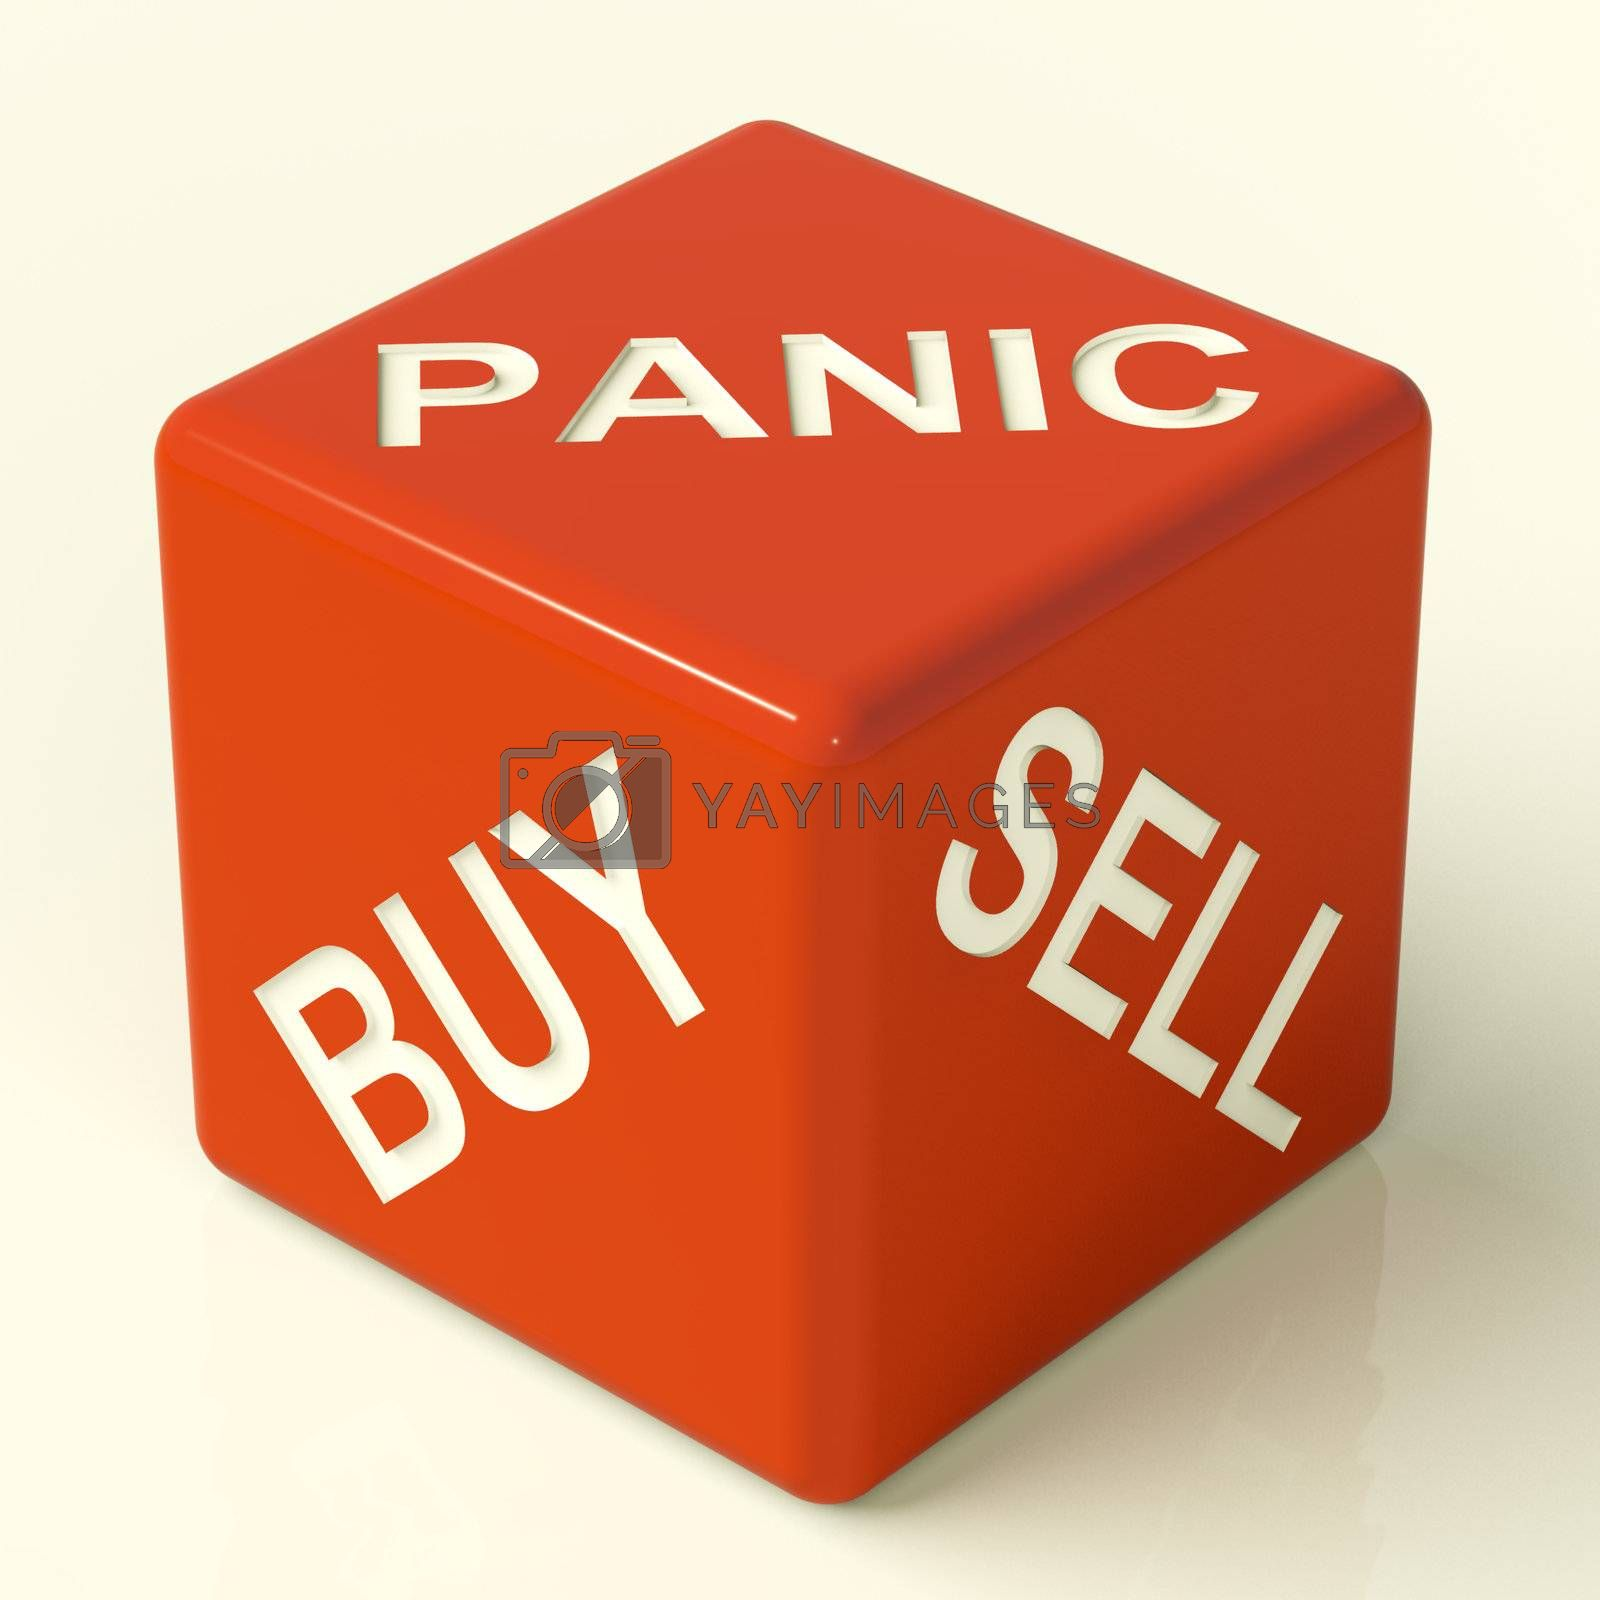 Buy Panic And Sell Red Dice Representing Market Stress